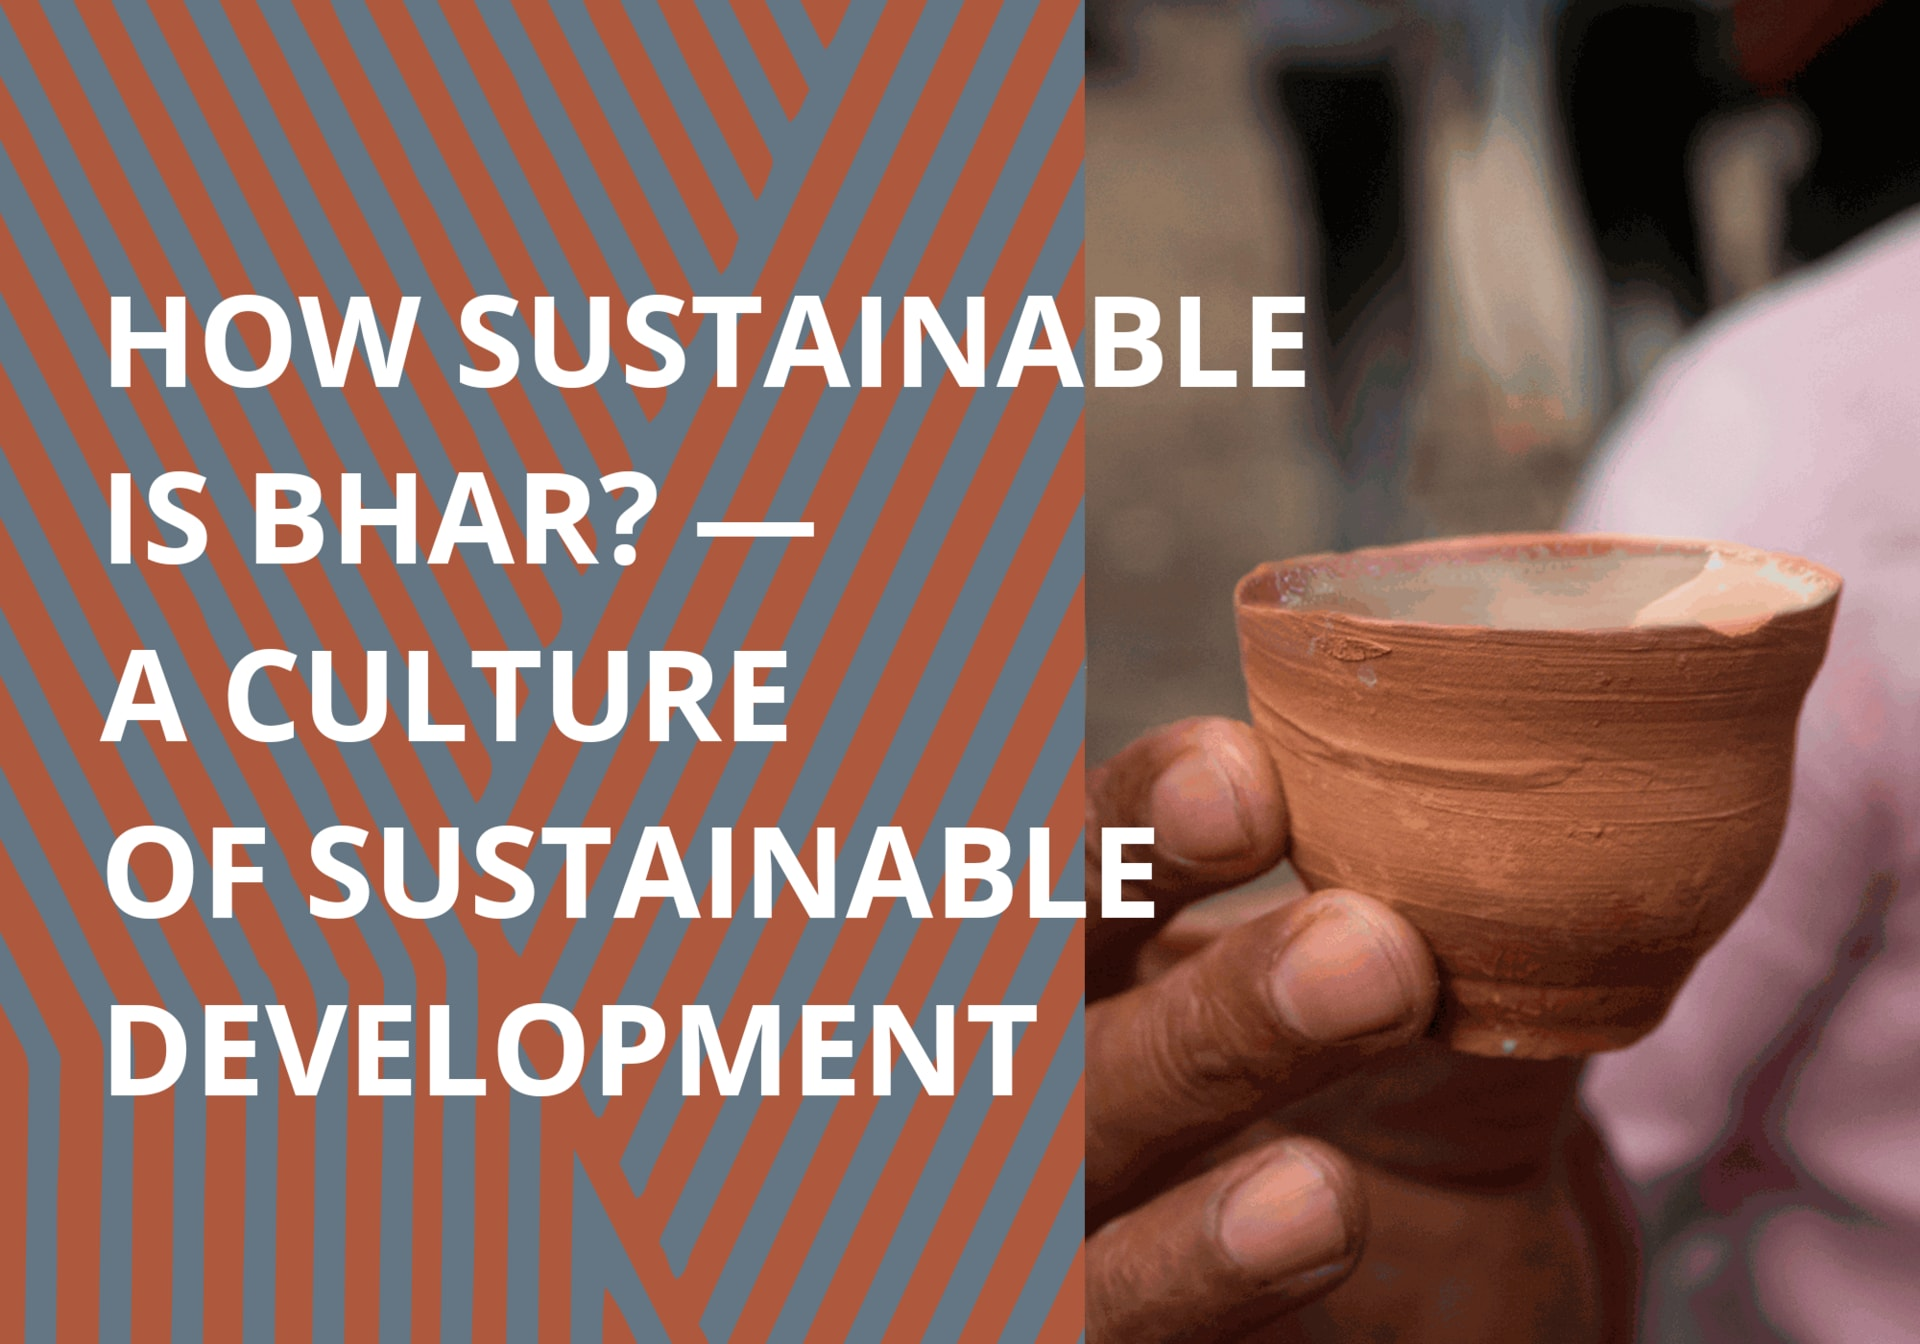 Cultural Sustainability: Future Prospects of a Traditional, Disposable Cup